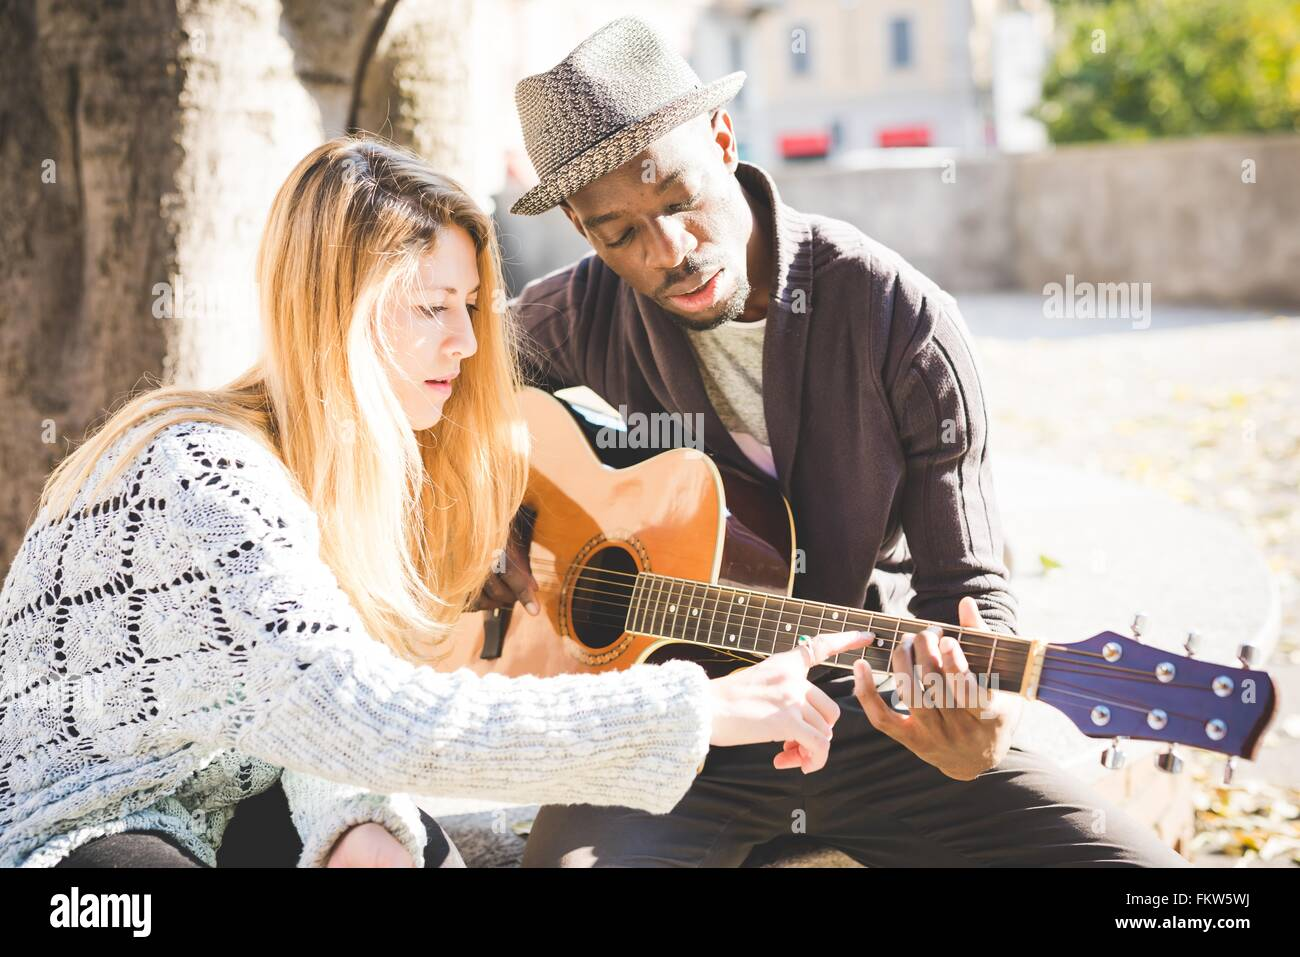 learning to play guitar stock photos learning to play guitar stock images alamy. Black Bedroom Furniture Sets. Home Design Ideas